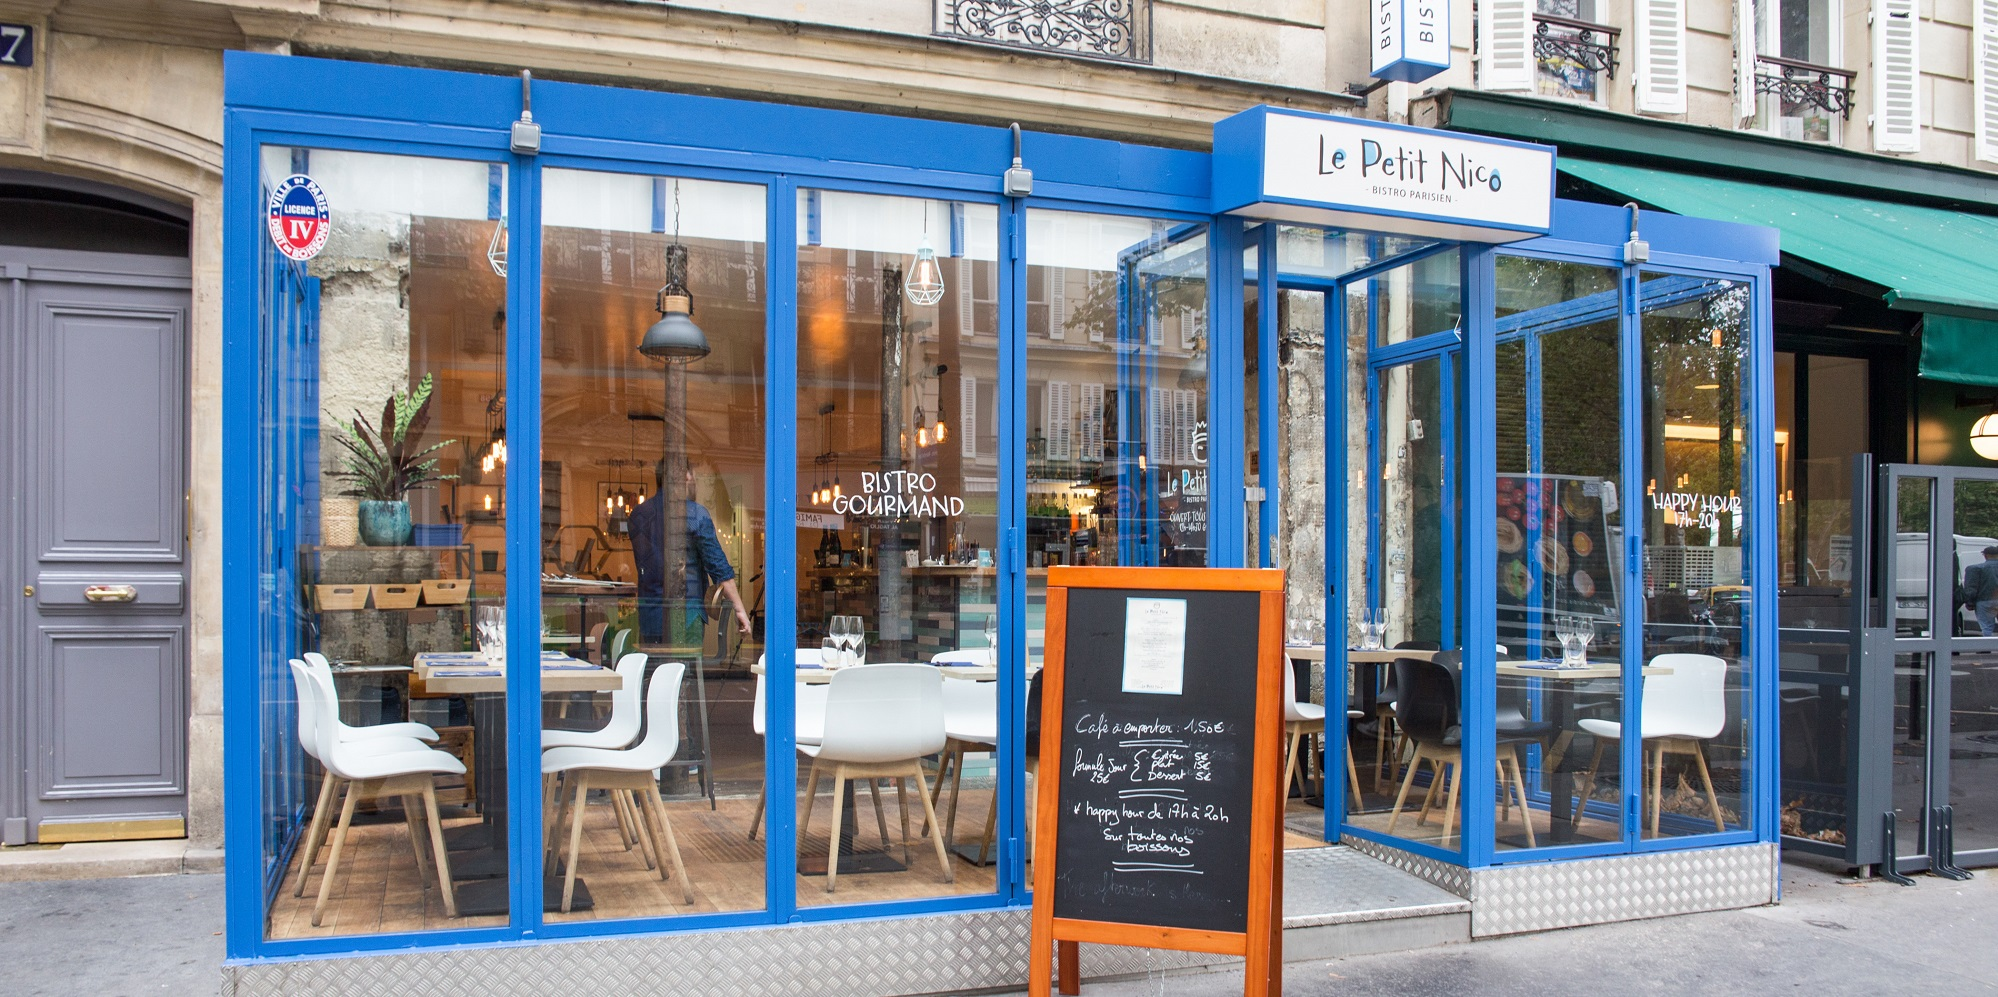 Brunch Le petit nico (75017 Paris)